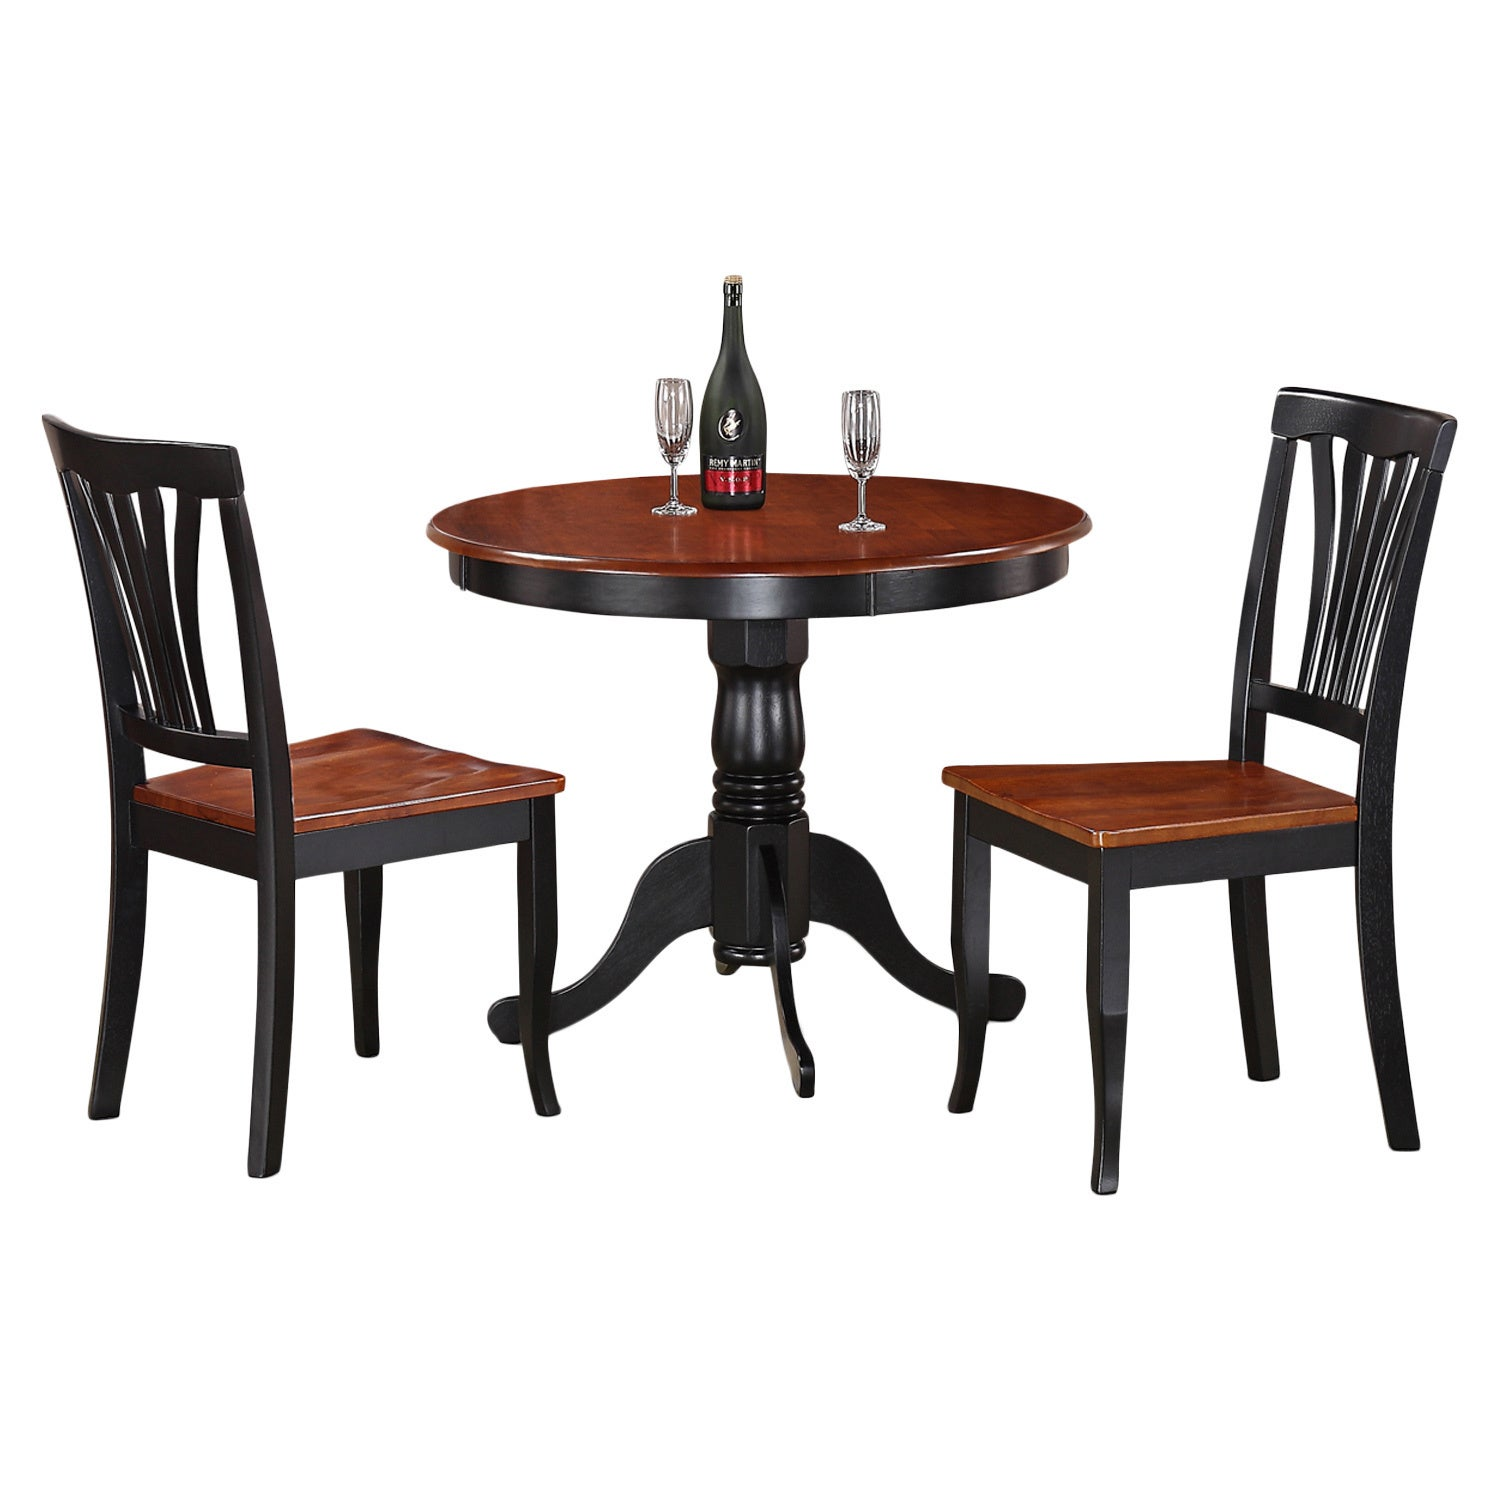 Superb 3 Piece Kitchen Nook Dining Set Small Kitchen